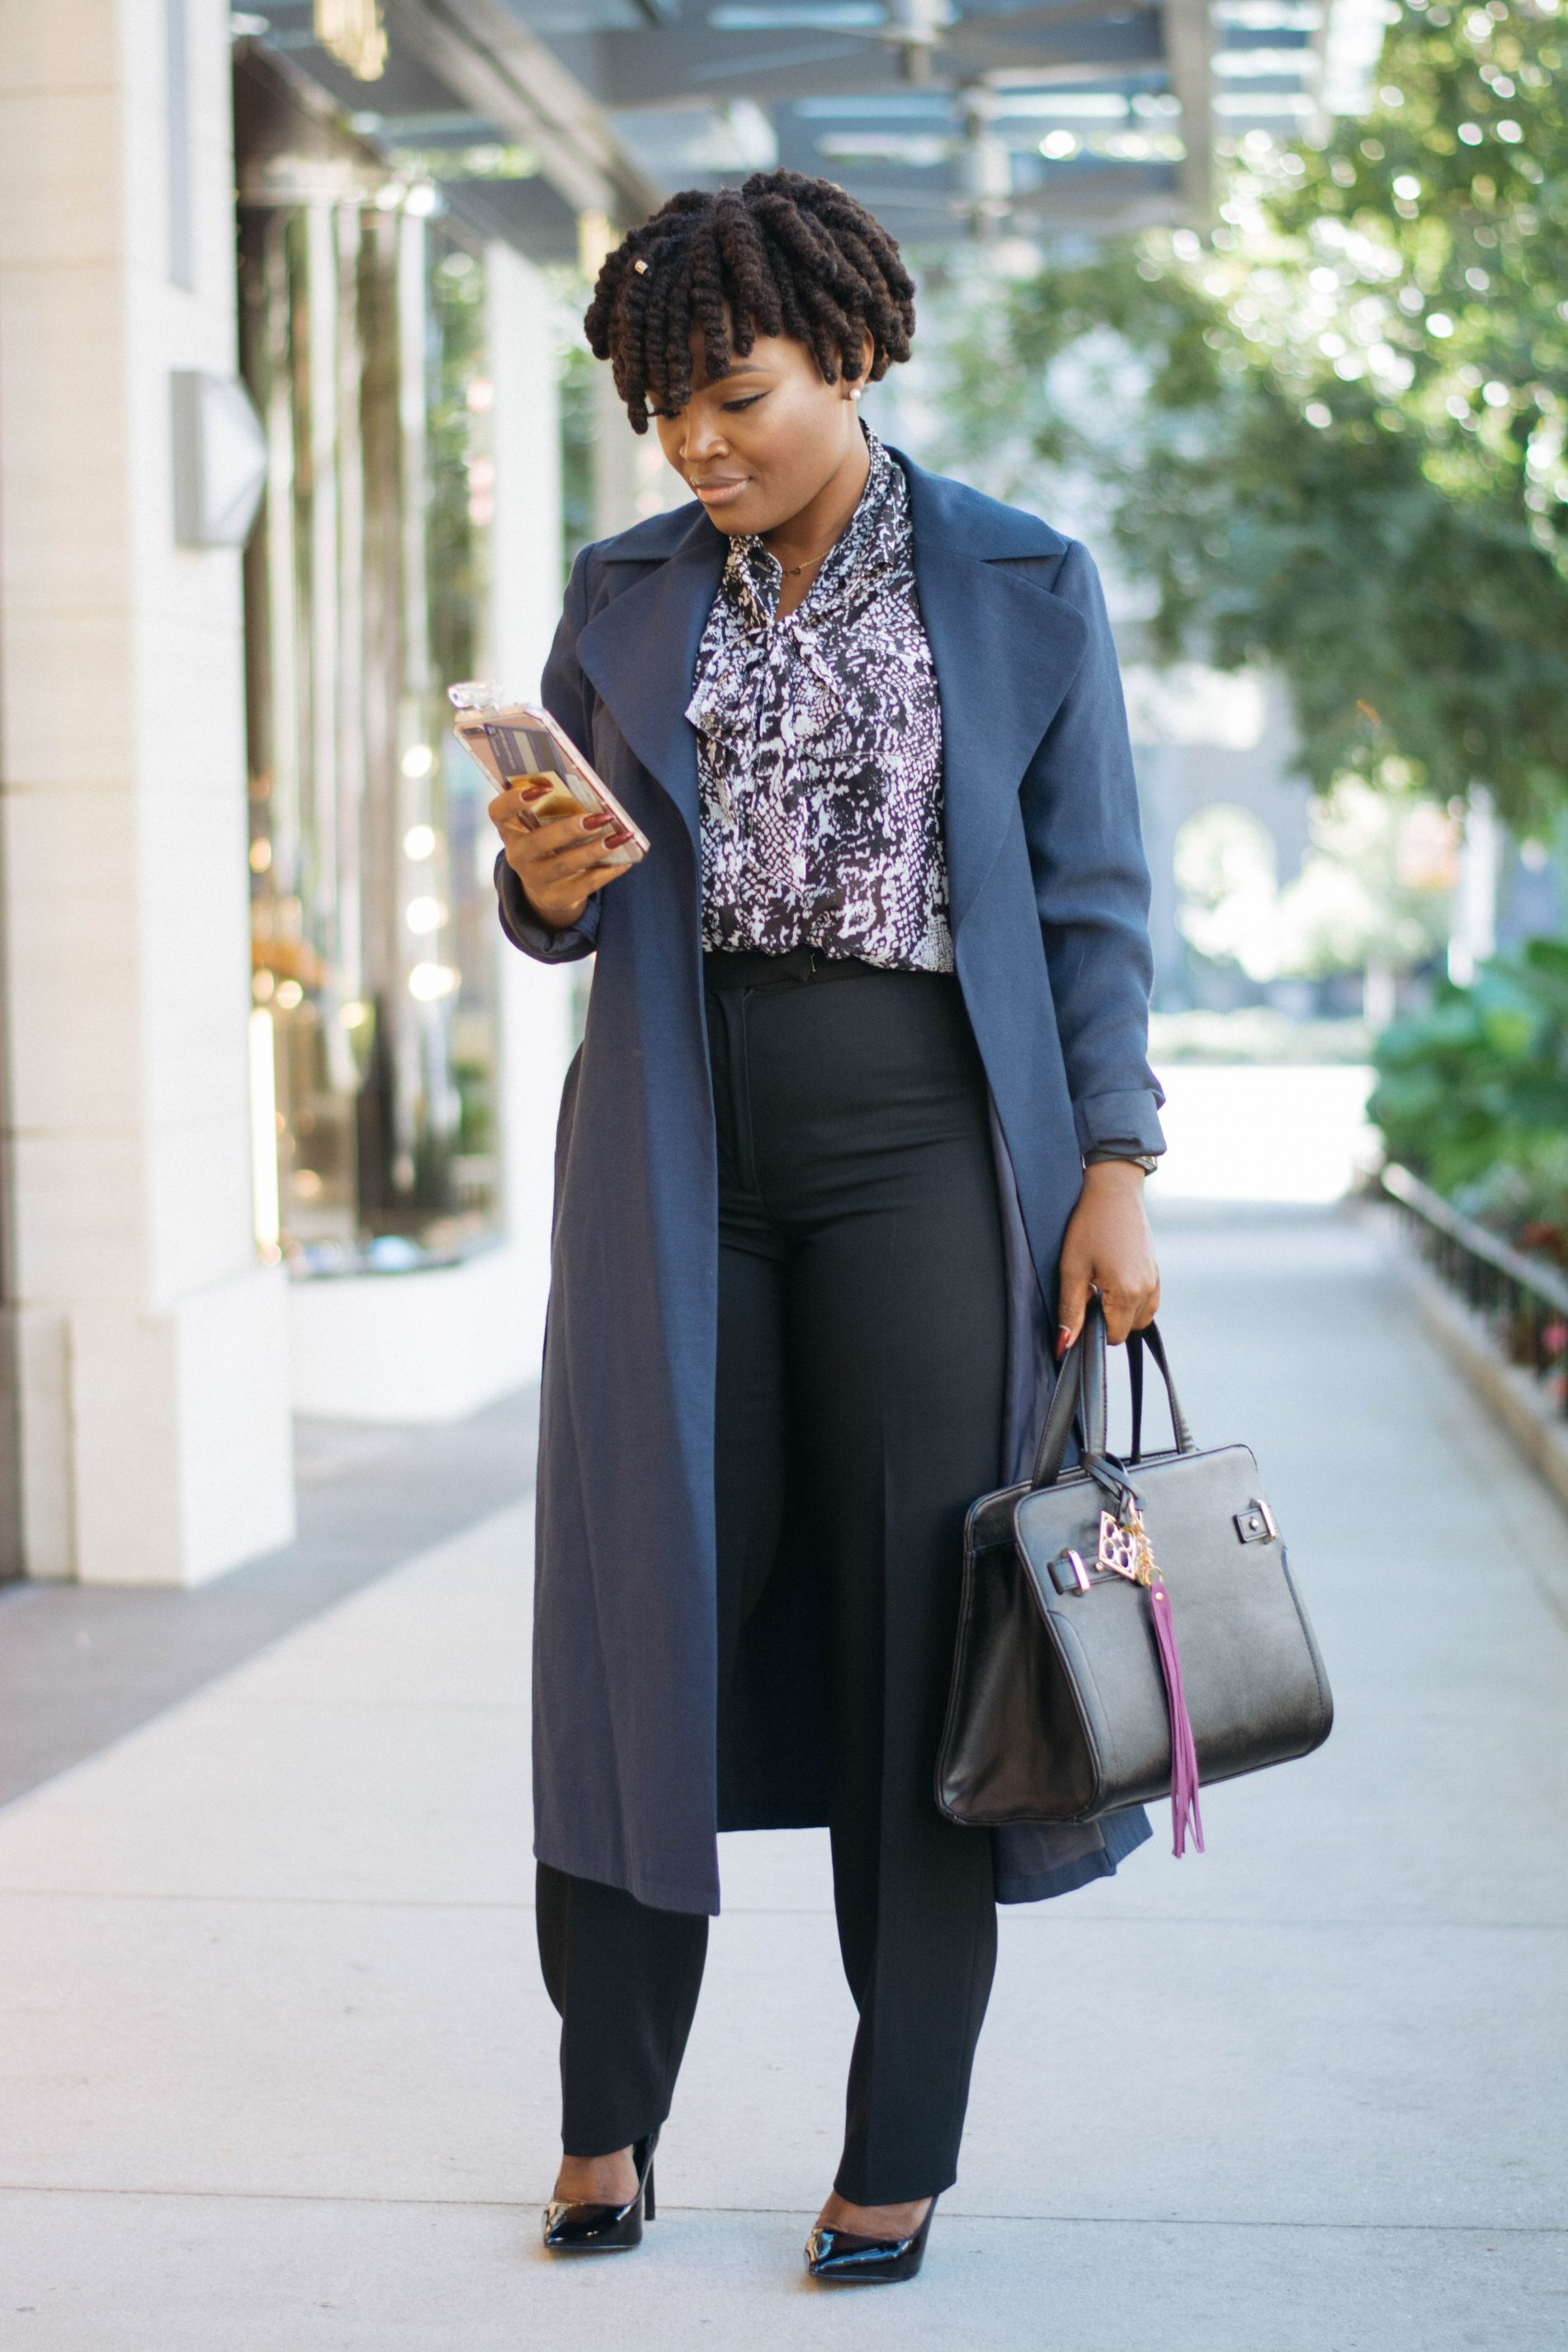 TGIT: SCANDAL OLIVIA POPE STYLE INSPIRED LOOK